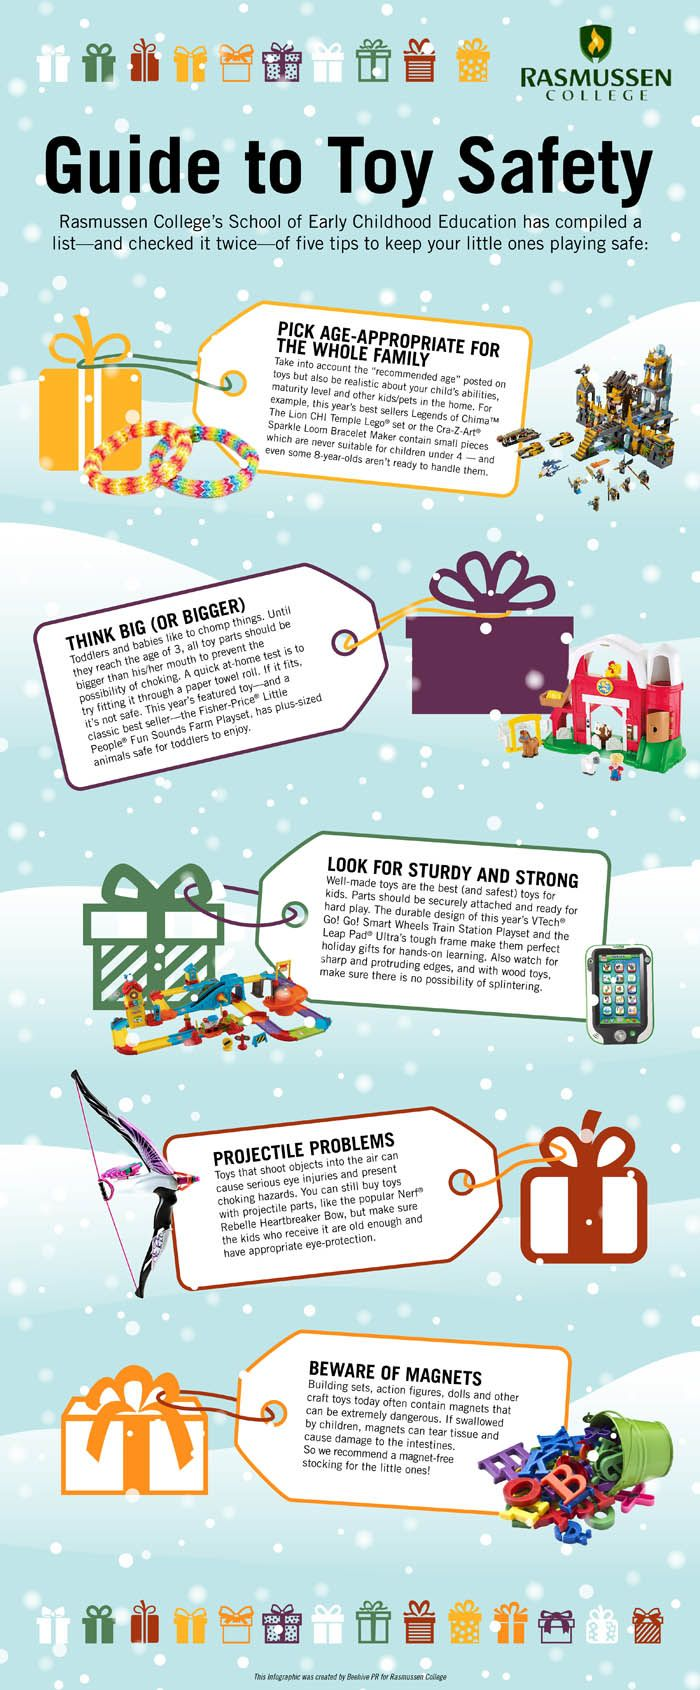 Guide To Toy Safety - http://hottoyguide.info/guide-to-toy-safety/ - Hot Christmas Toys 2014